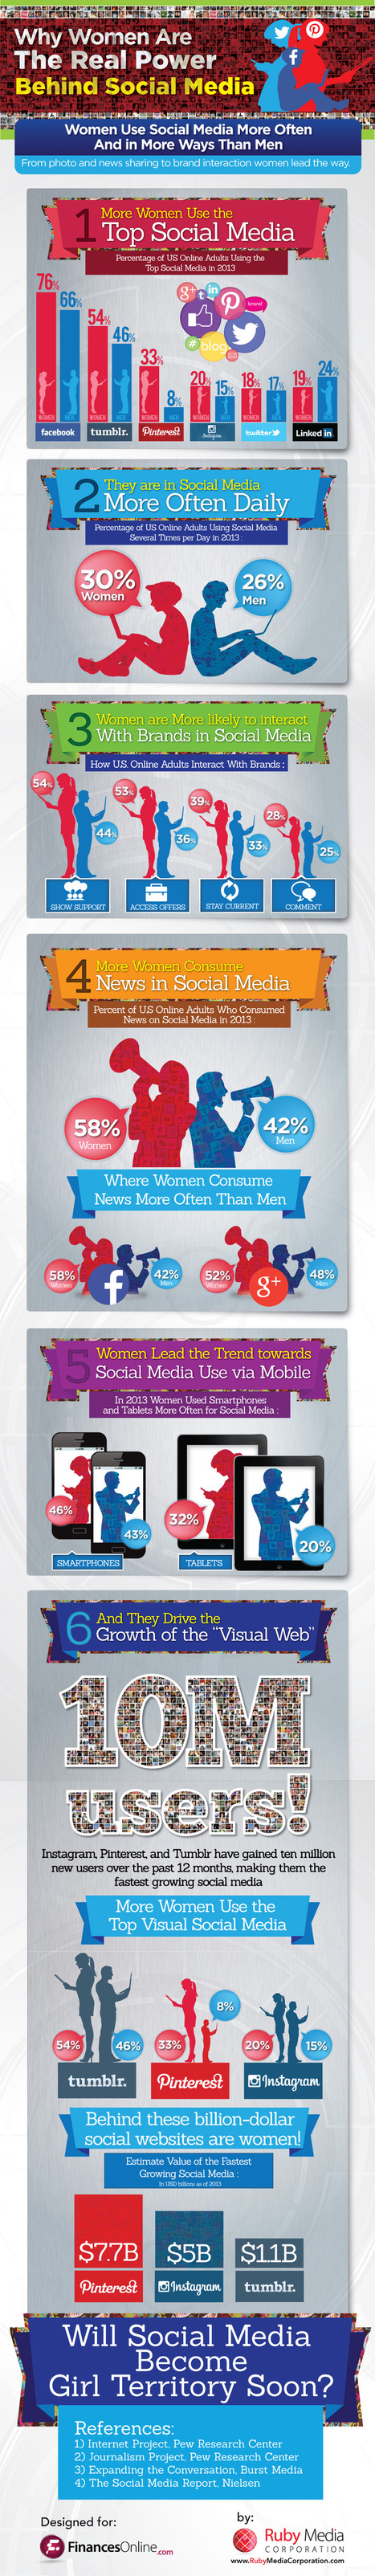 Women Have Taken Over Social Media [INFOGRAPHIC] | MarketingHits | Scoop.it